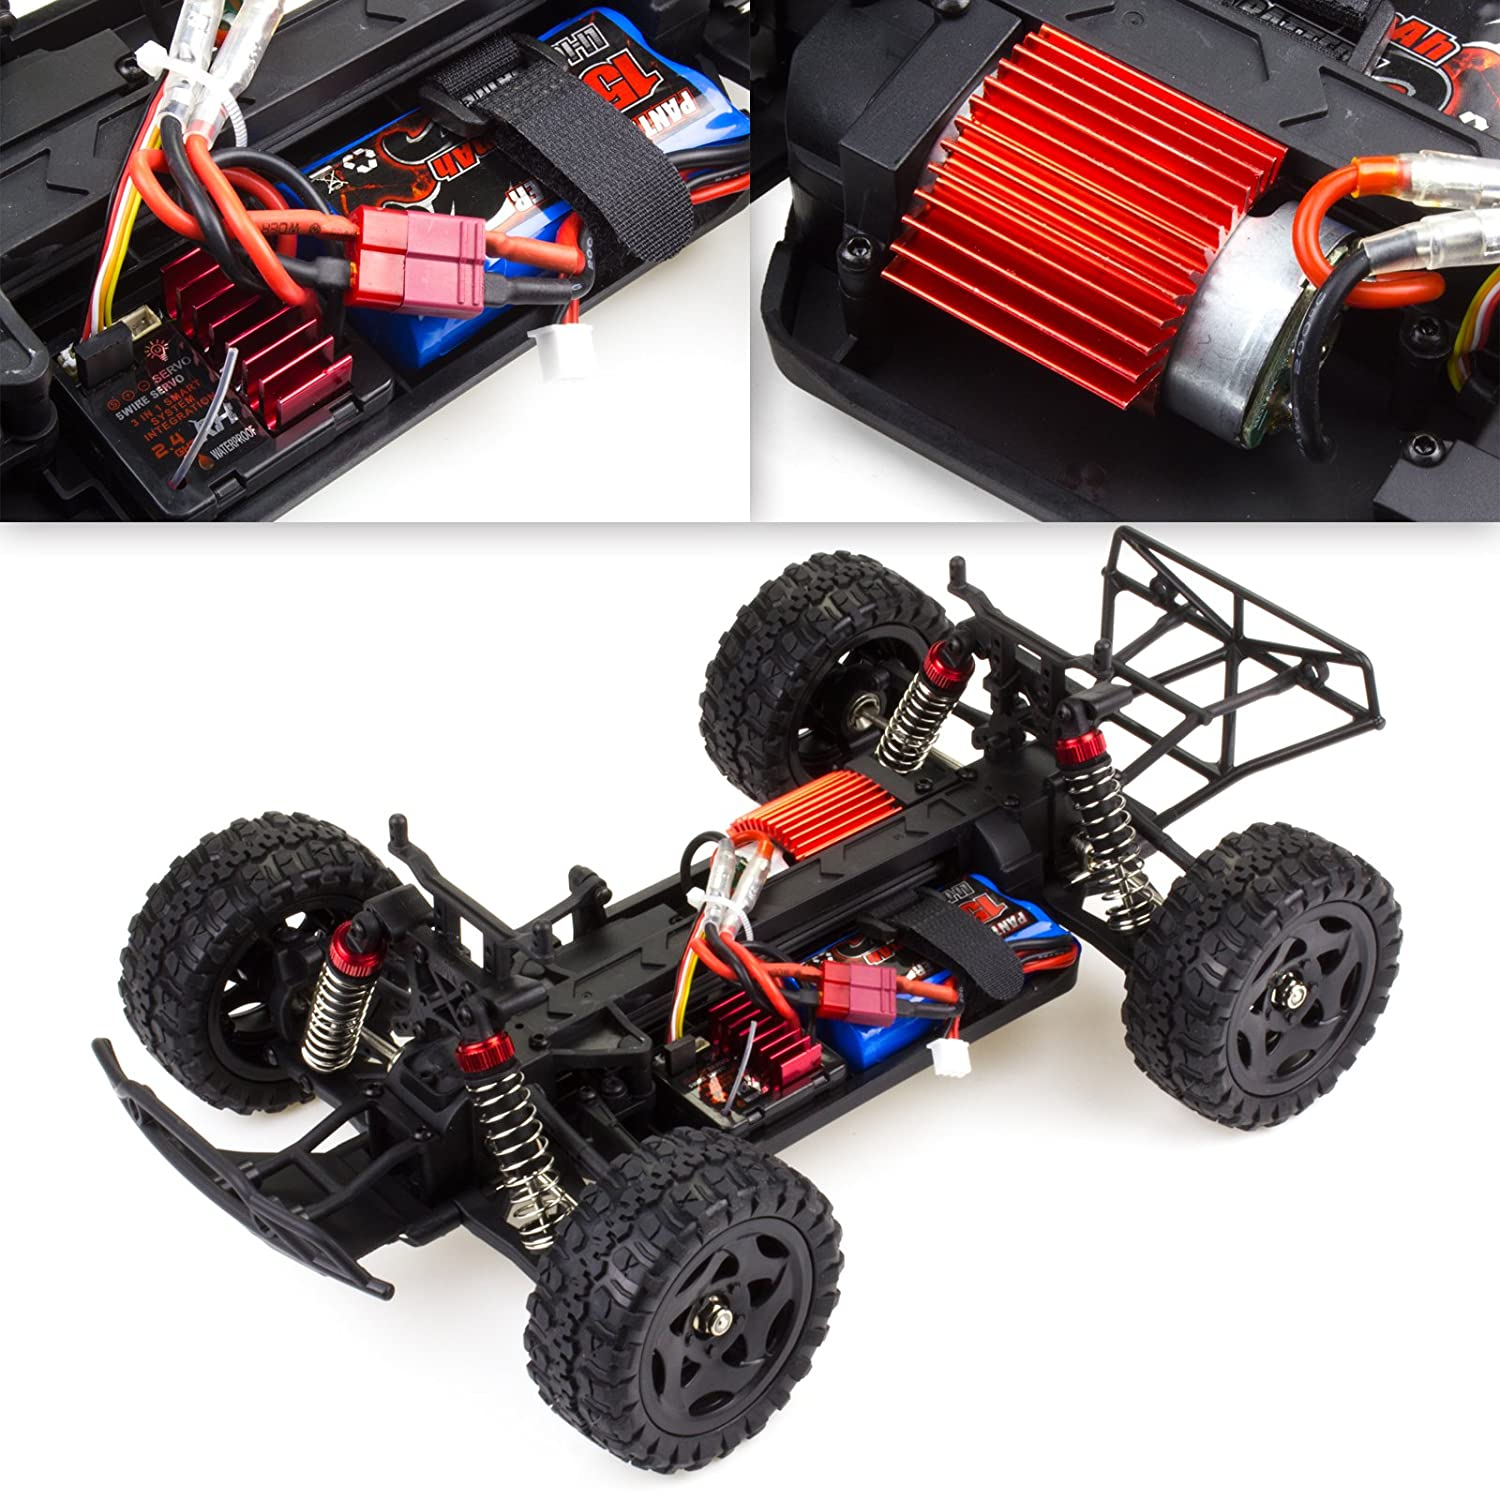 Cheerwing Remo Rocket Rc Truck 116 24ghz 4wd Remote Rims Plug Wiring Diagram Control Car High Speed Off Road Short Course Orange Toys Games